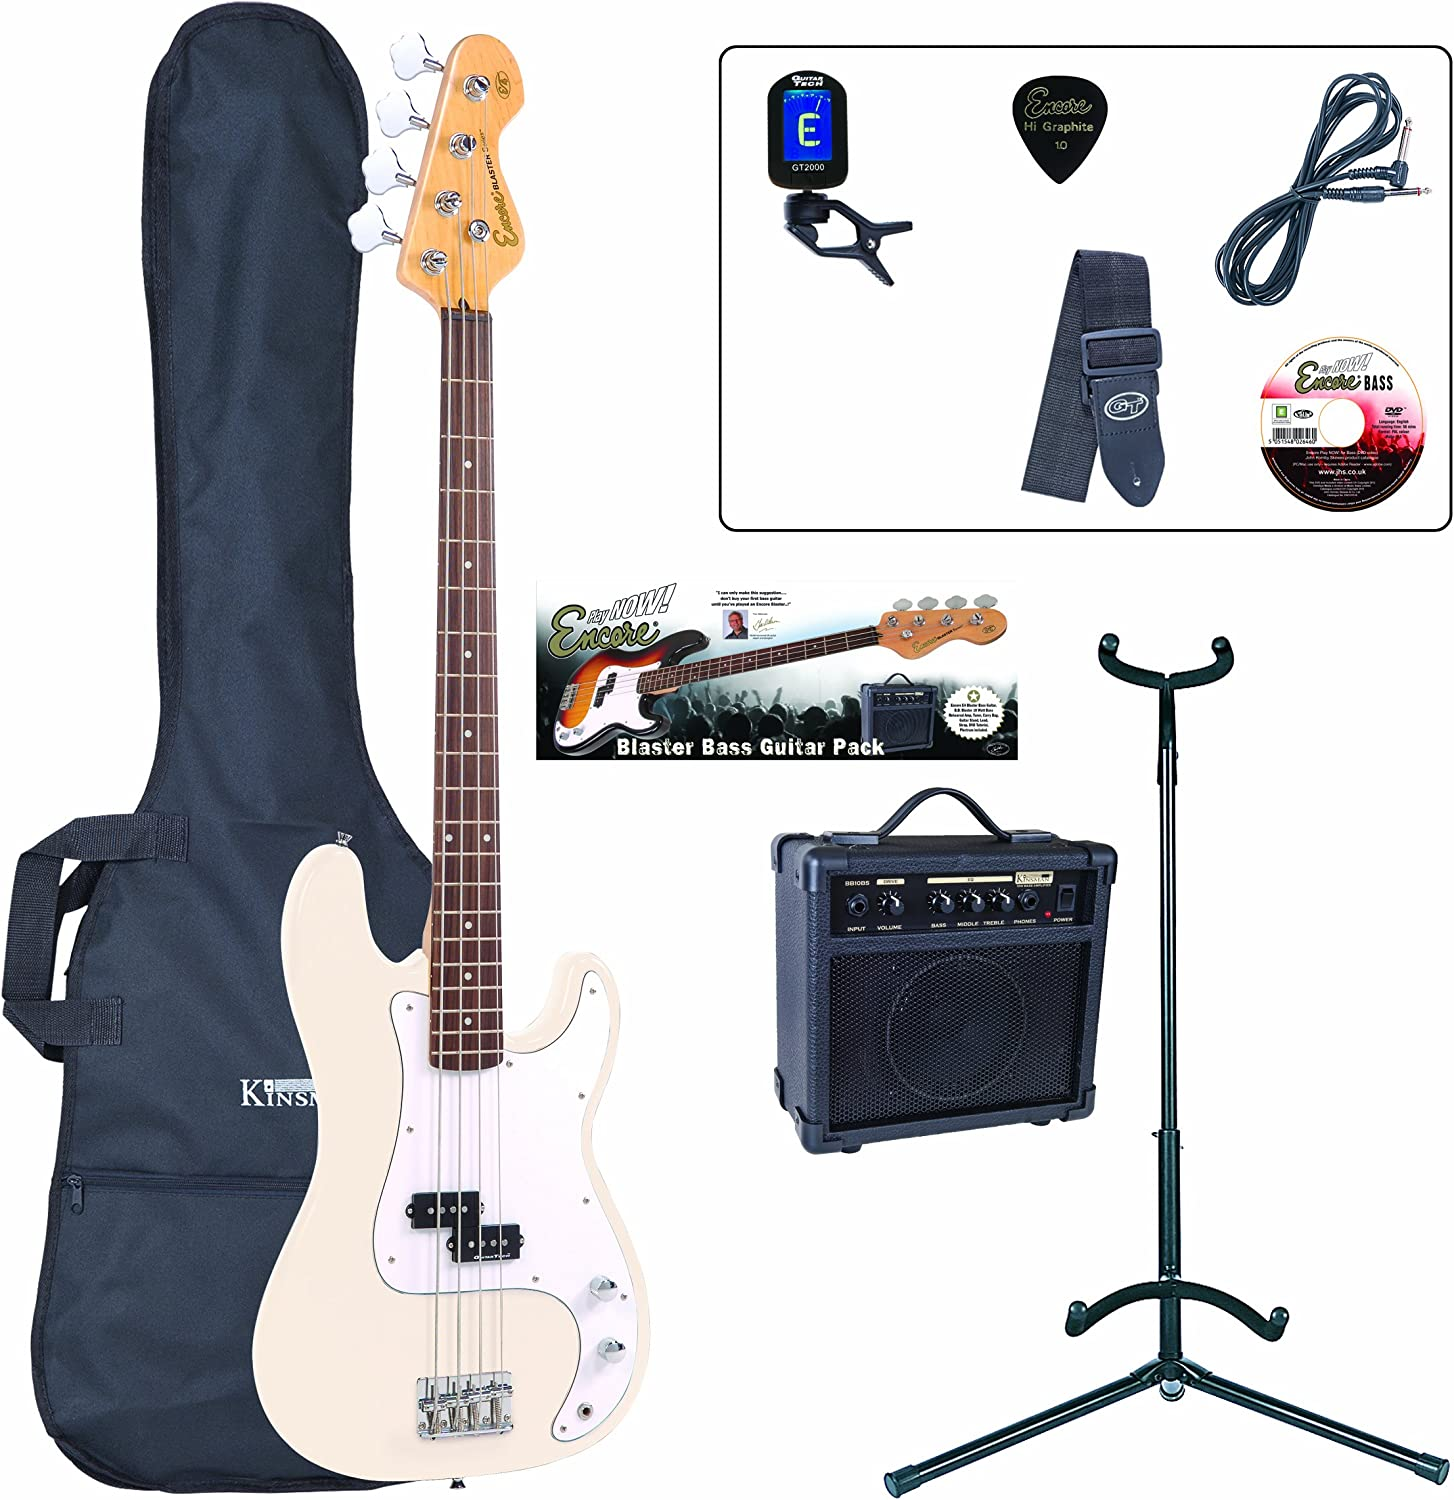 Encore E4 Bass Guitar Starter Pack - White: Amazon.es: Instrumentos musicales